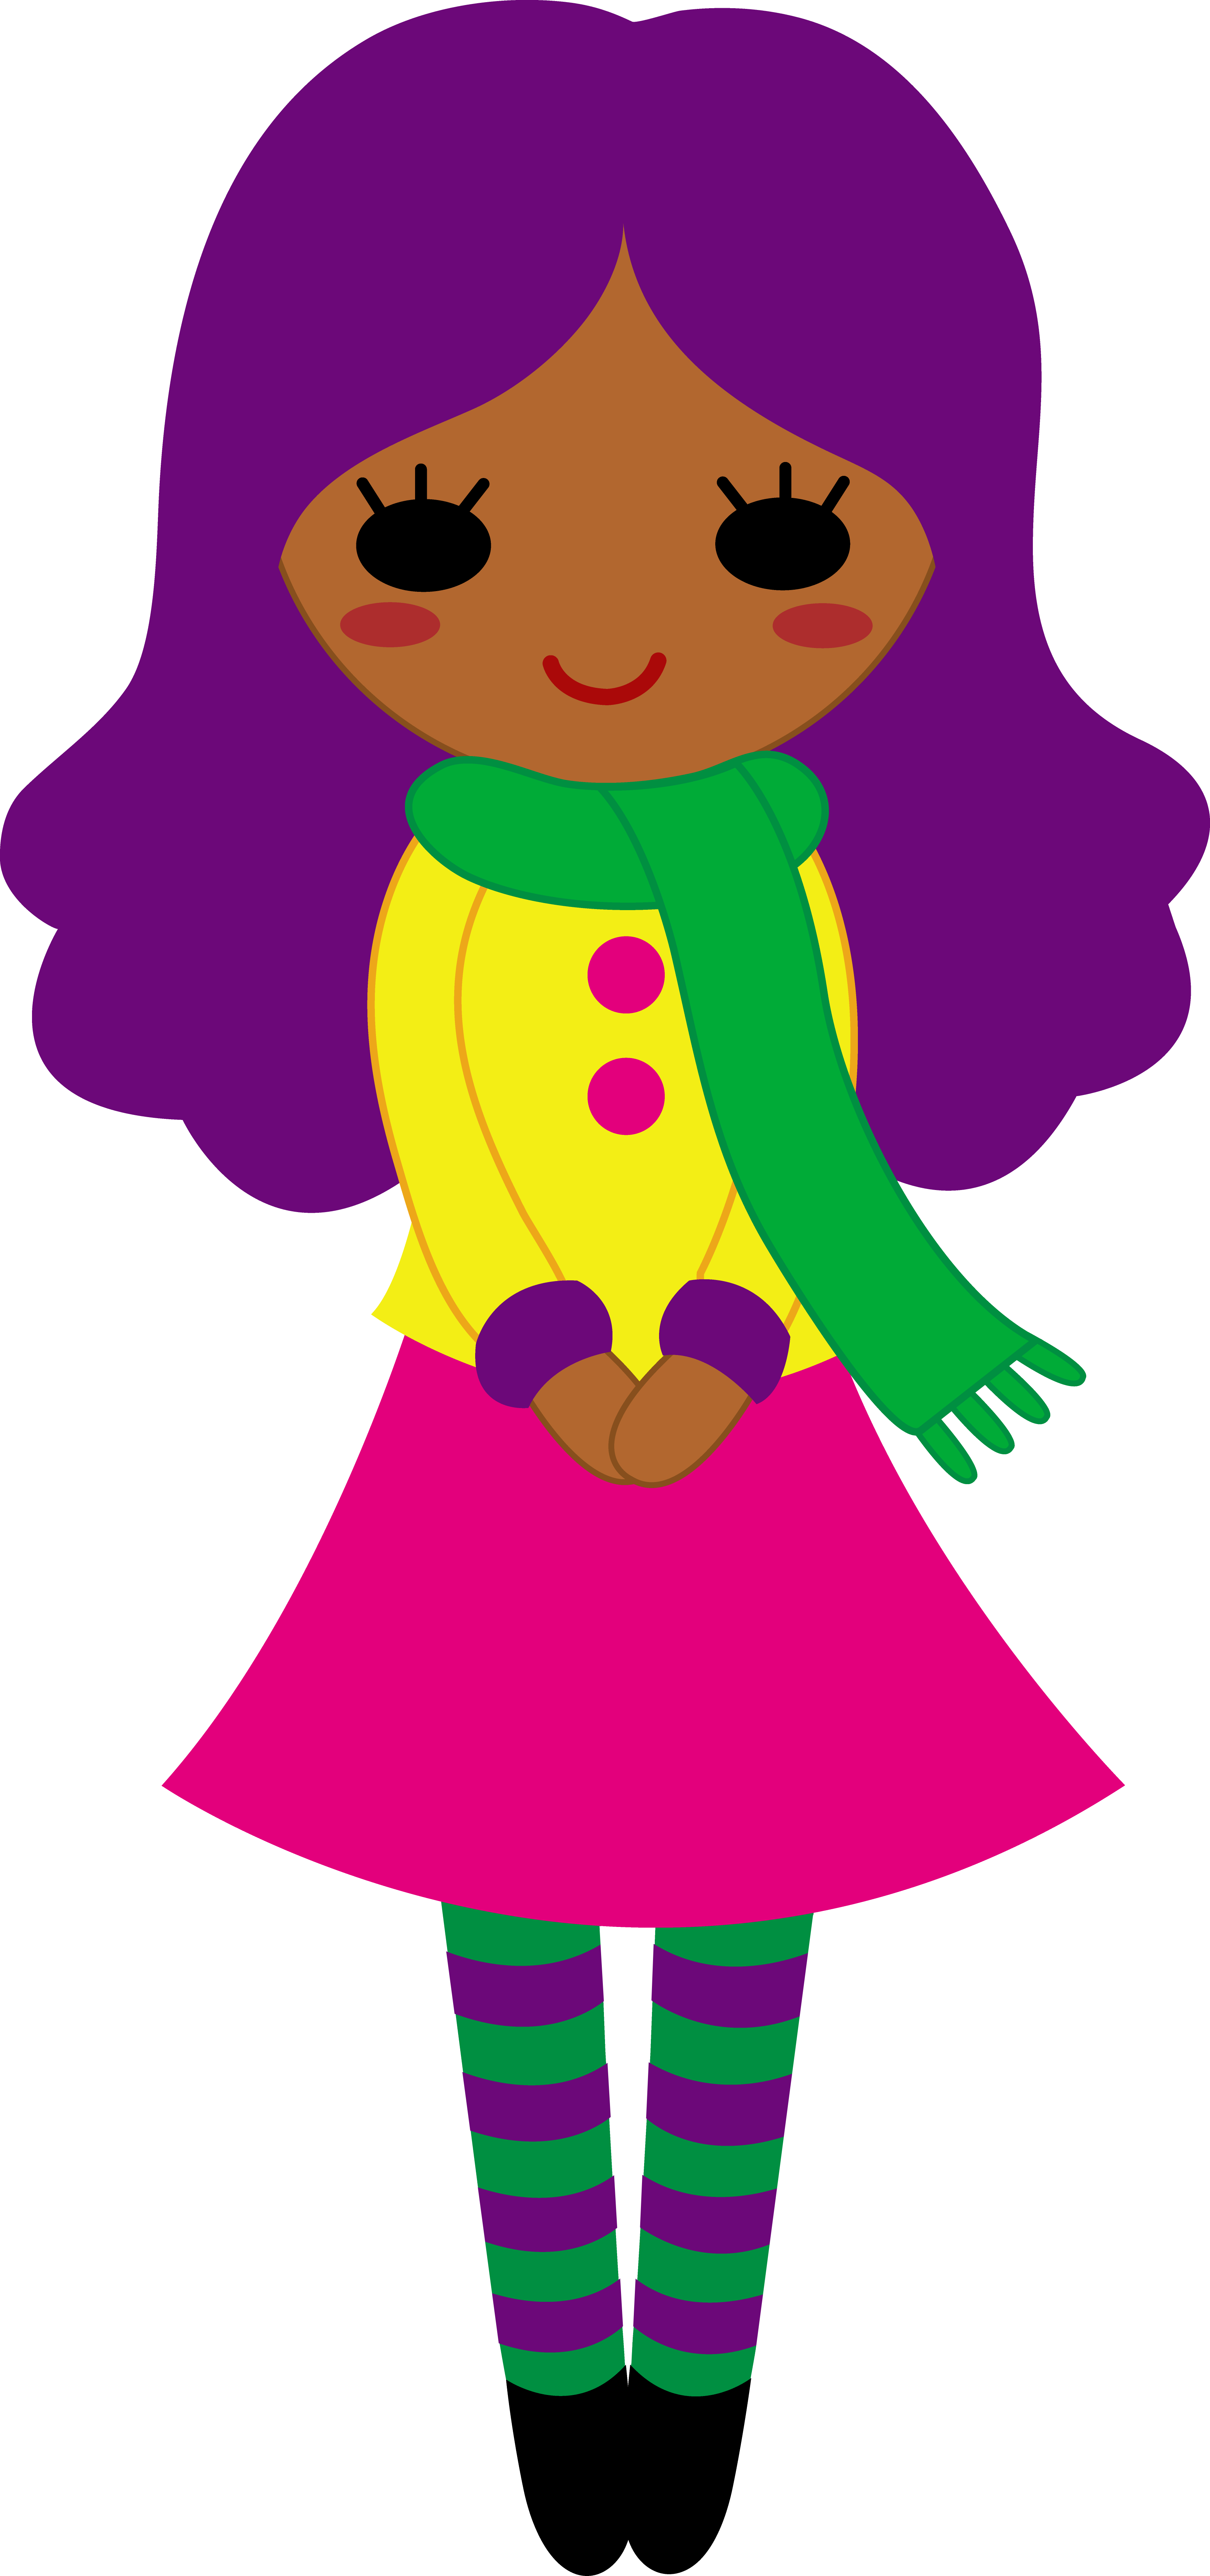 Purple clipart cute. Girl fashion at getdrawings